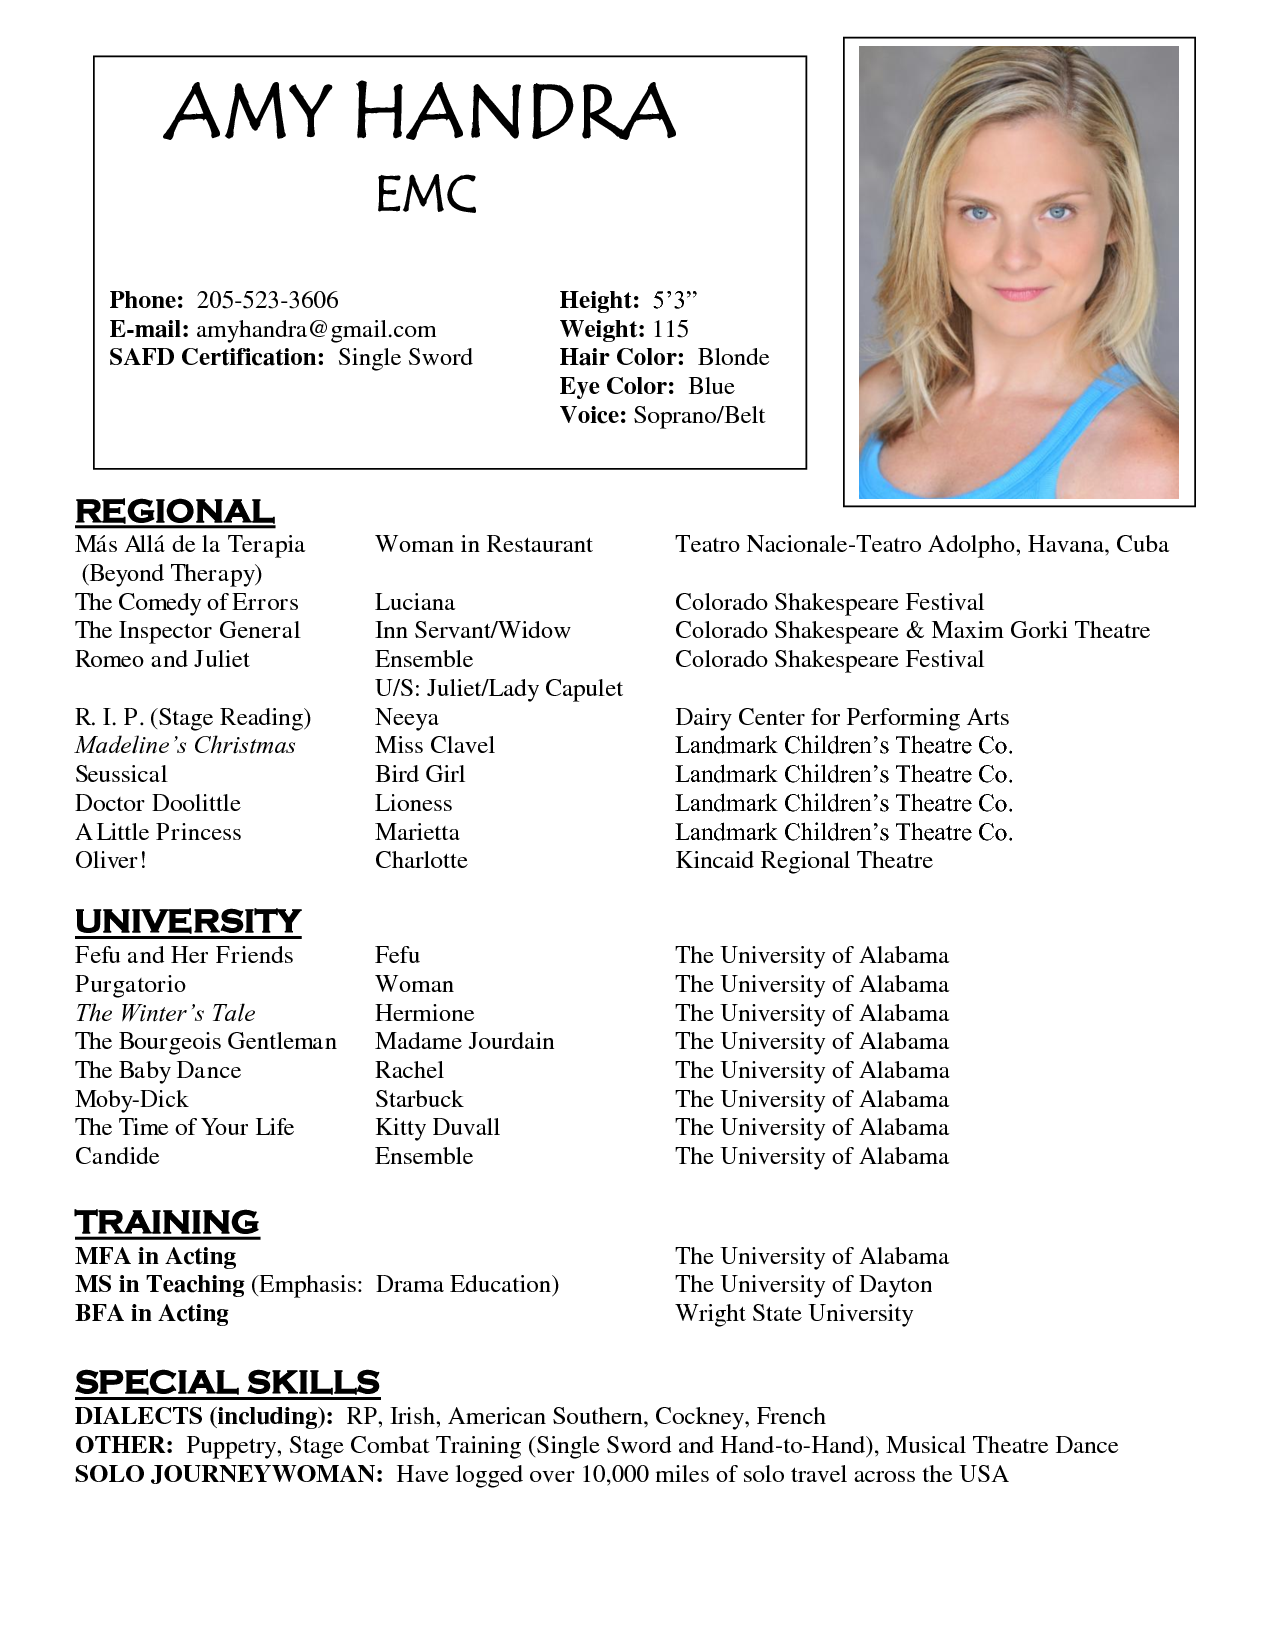 Acting Resume Sample Free   Http://www.resumecareer.info/acting